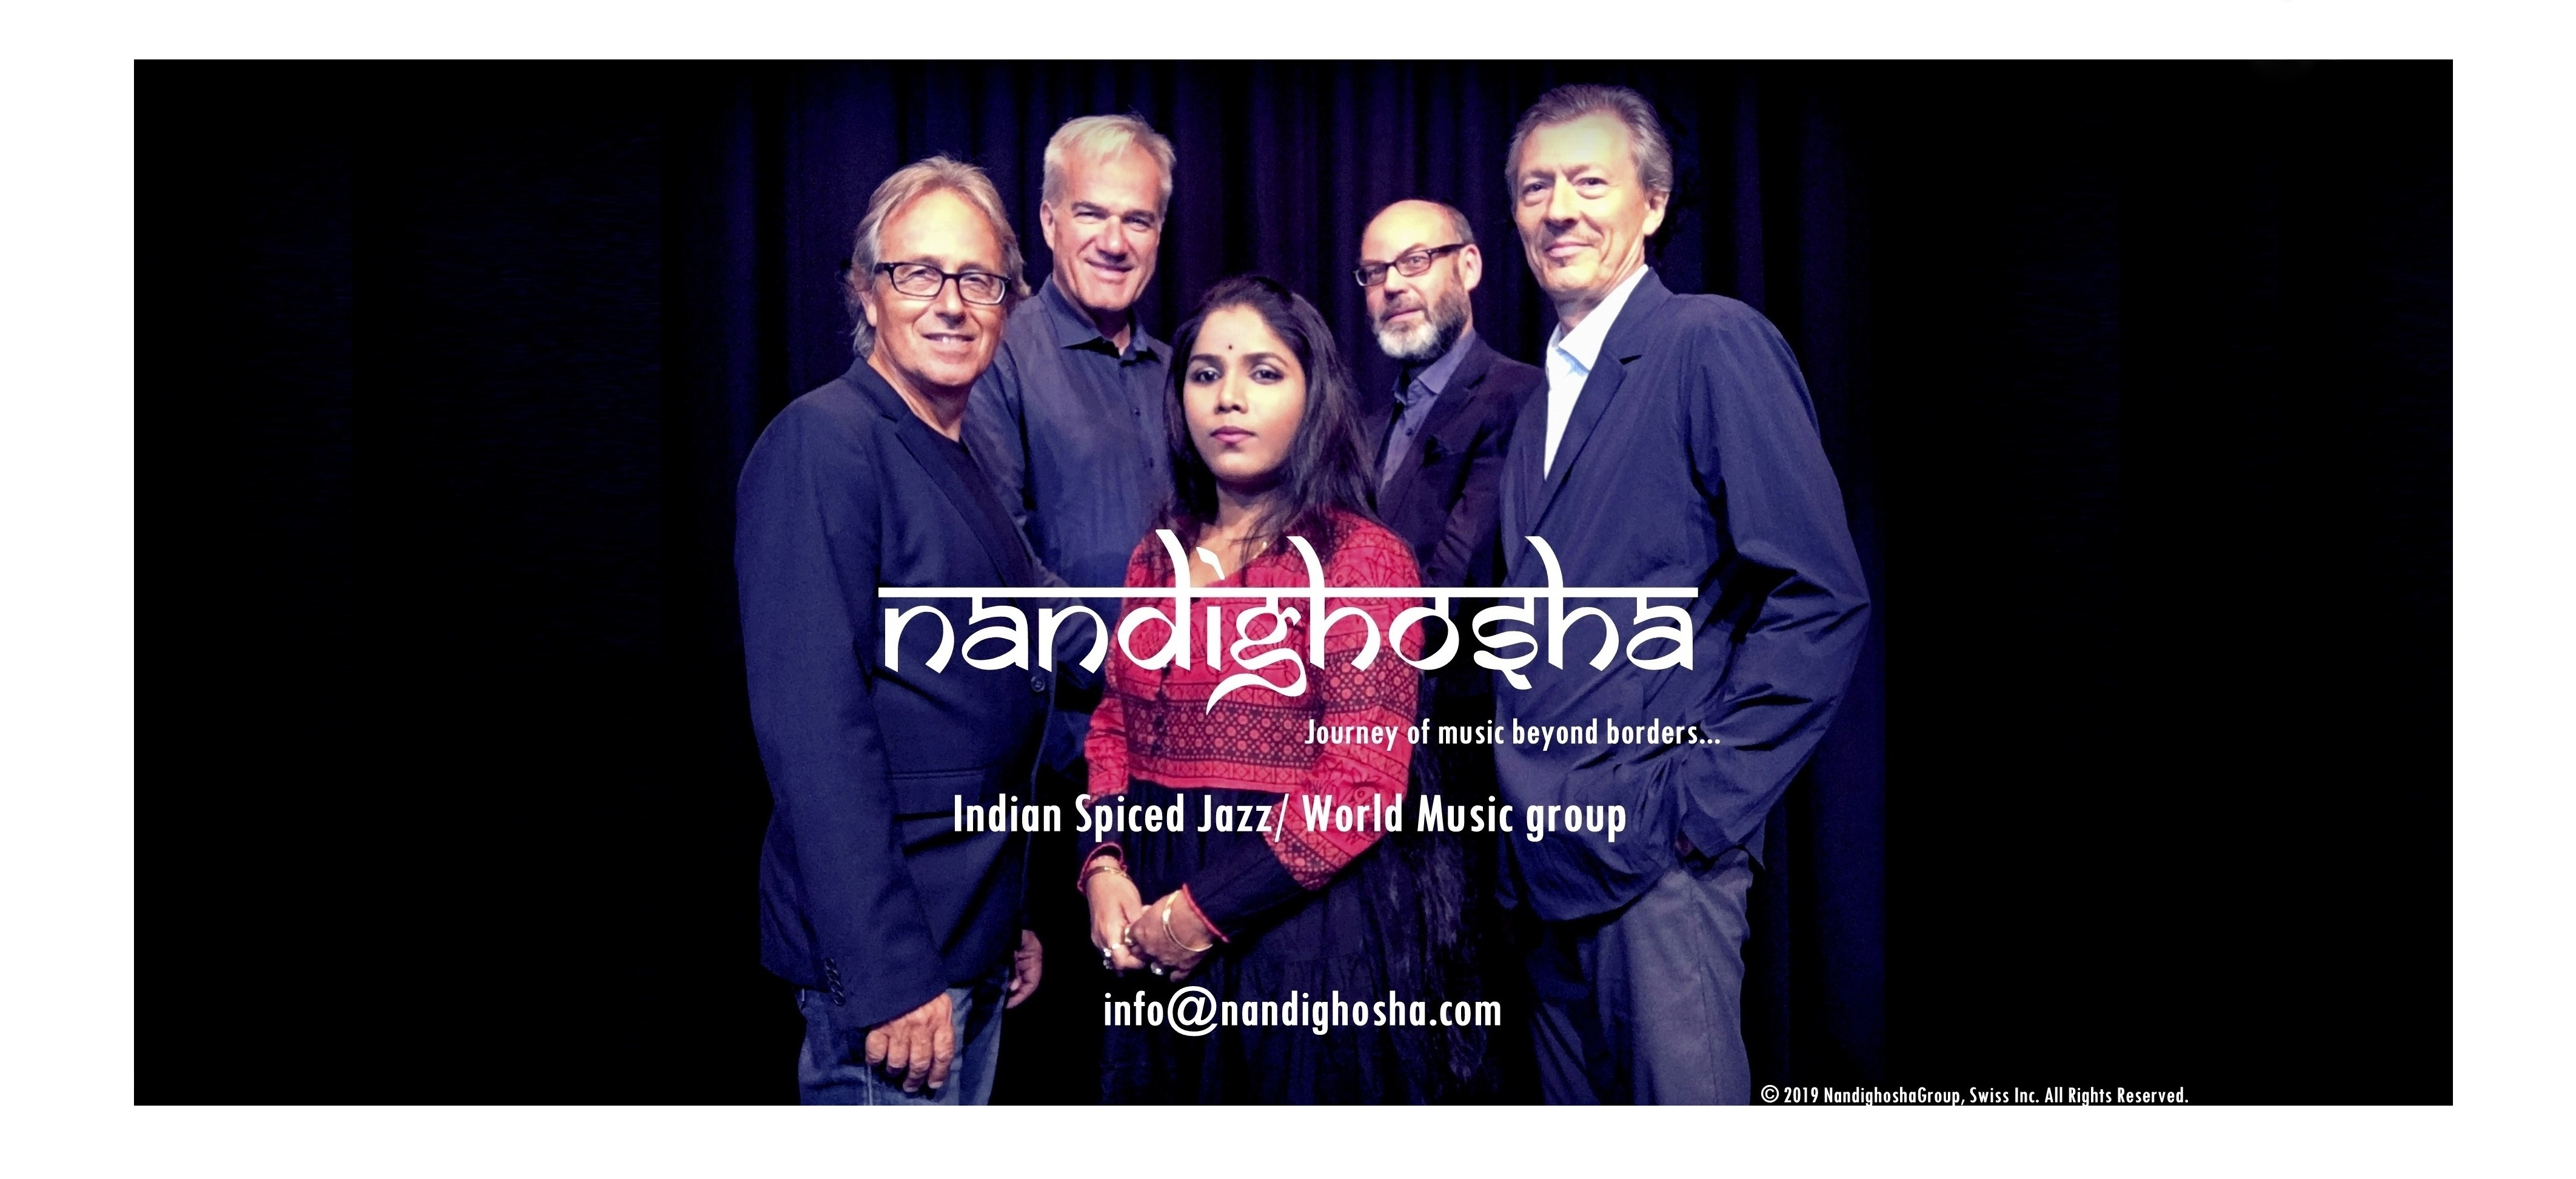 Welcome to the Official Website of NANDIGHOSHA